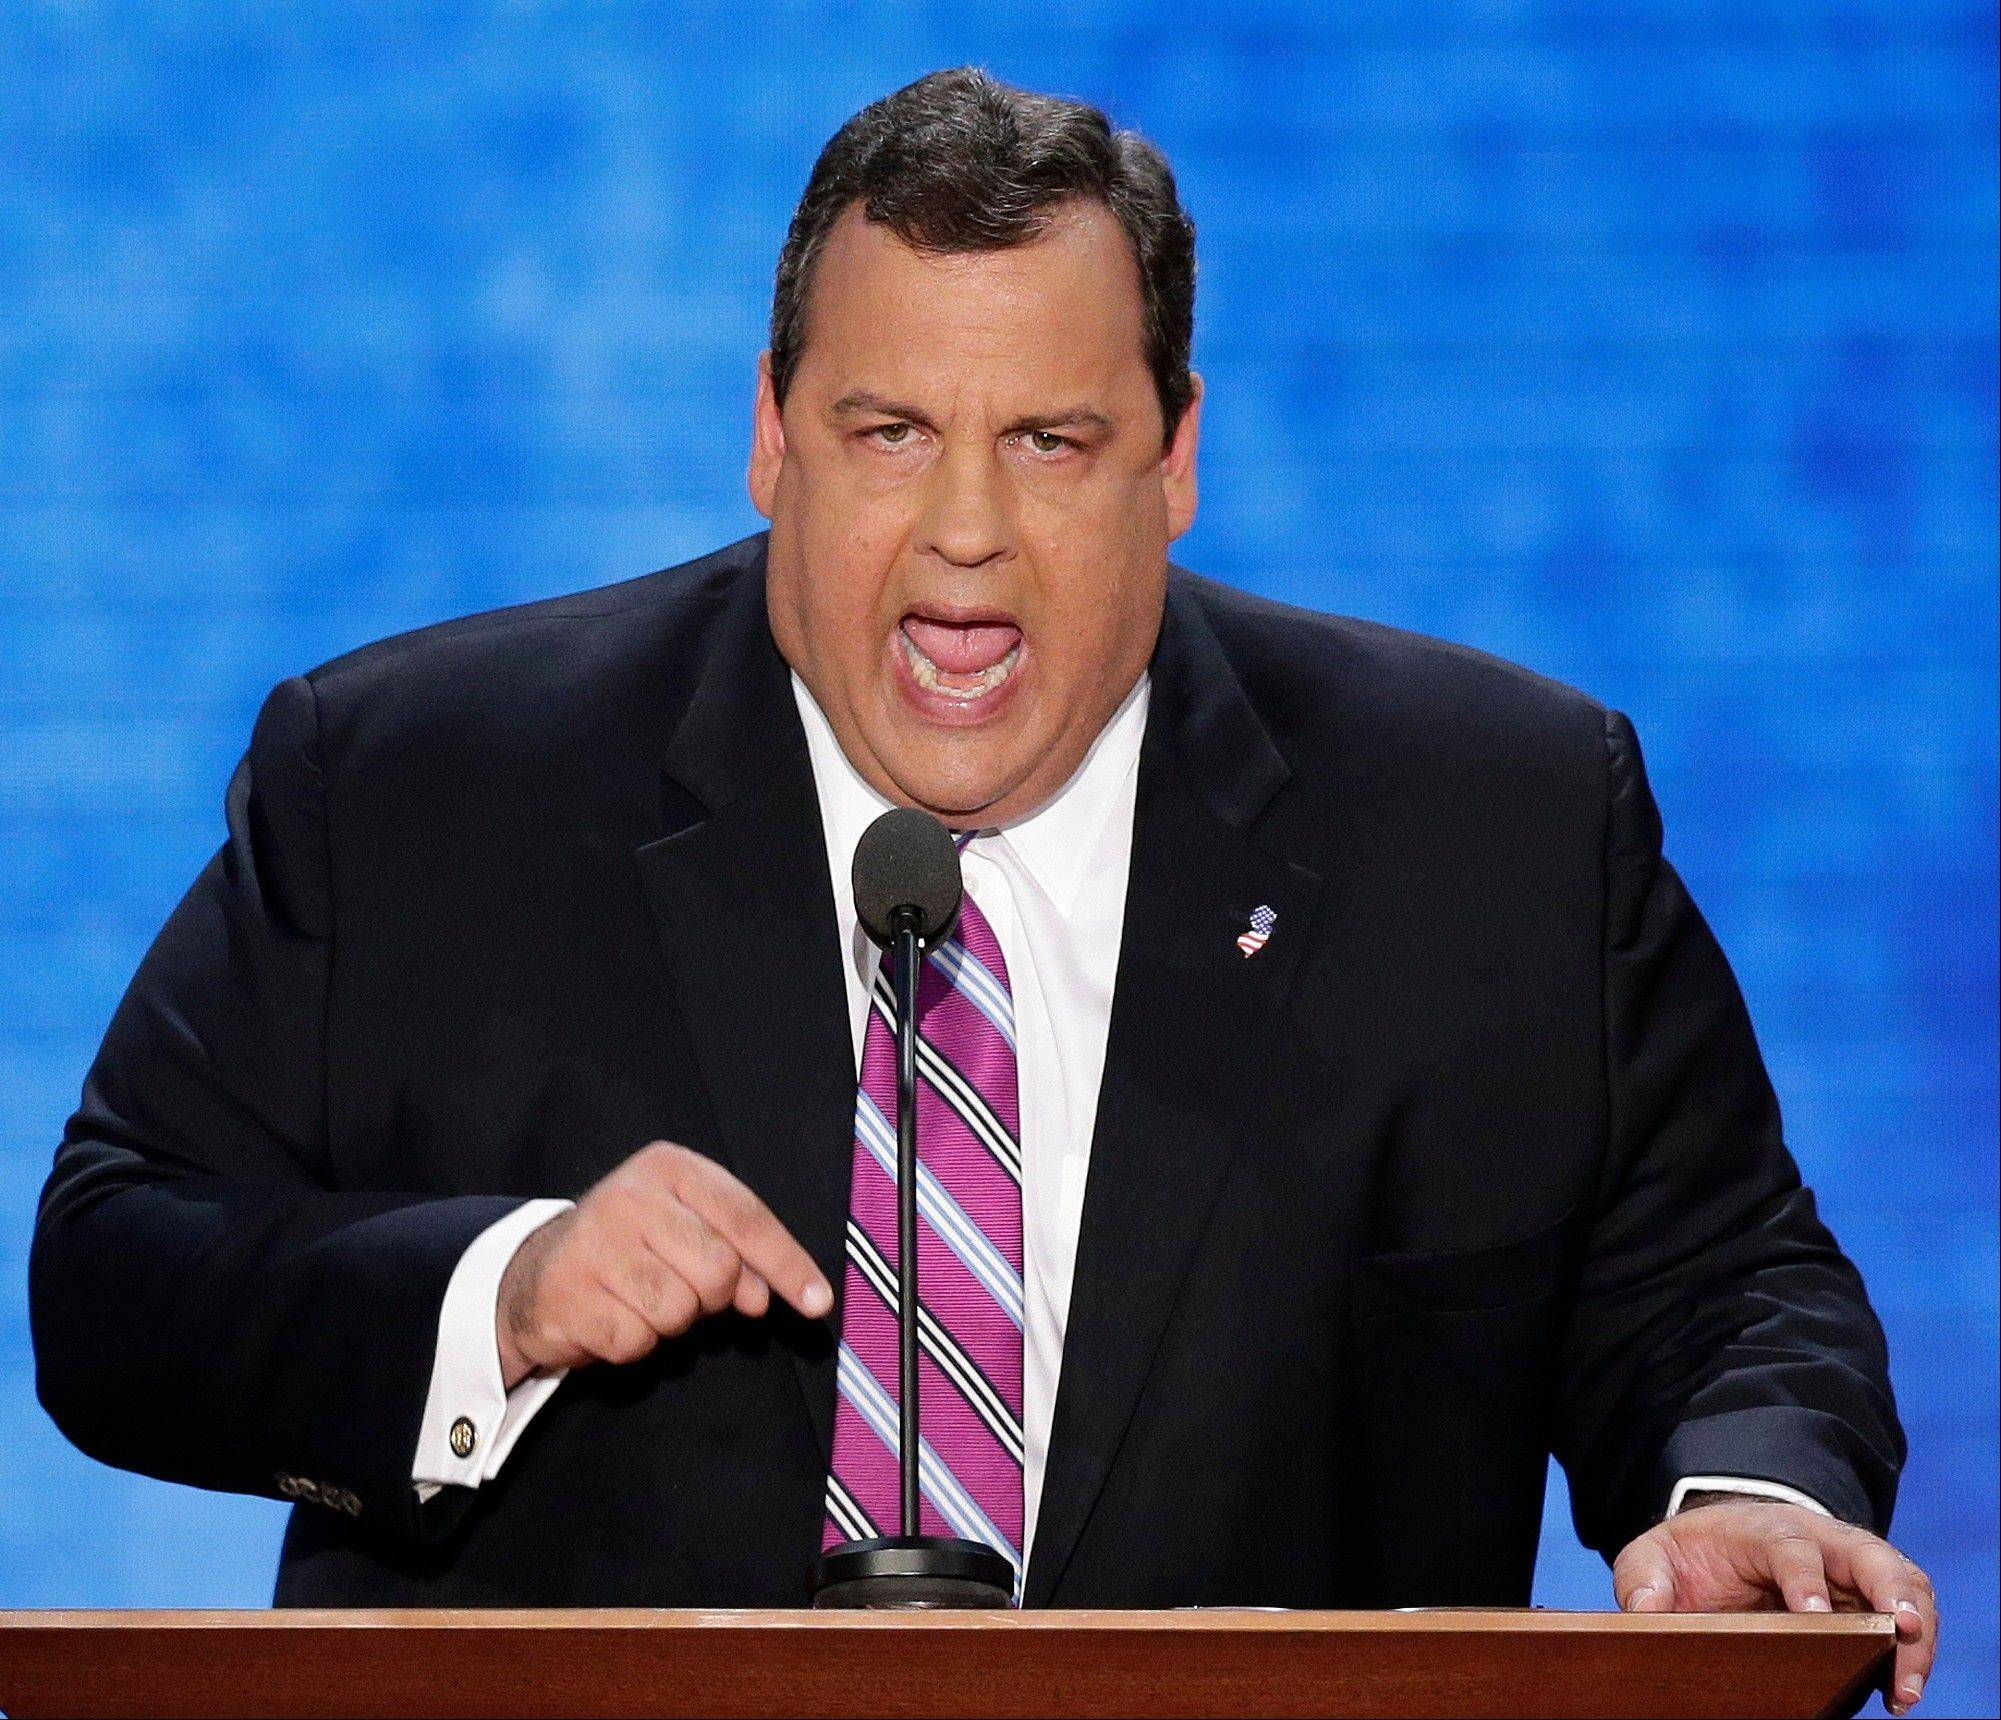 New Jersey Governor Chris Christie addresses the Republican National Convention .